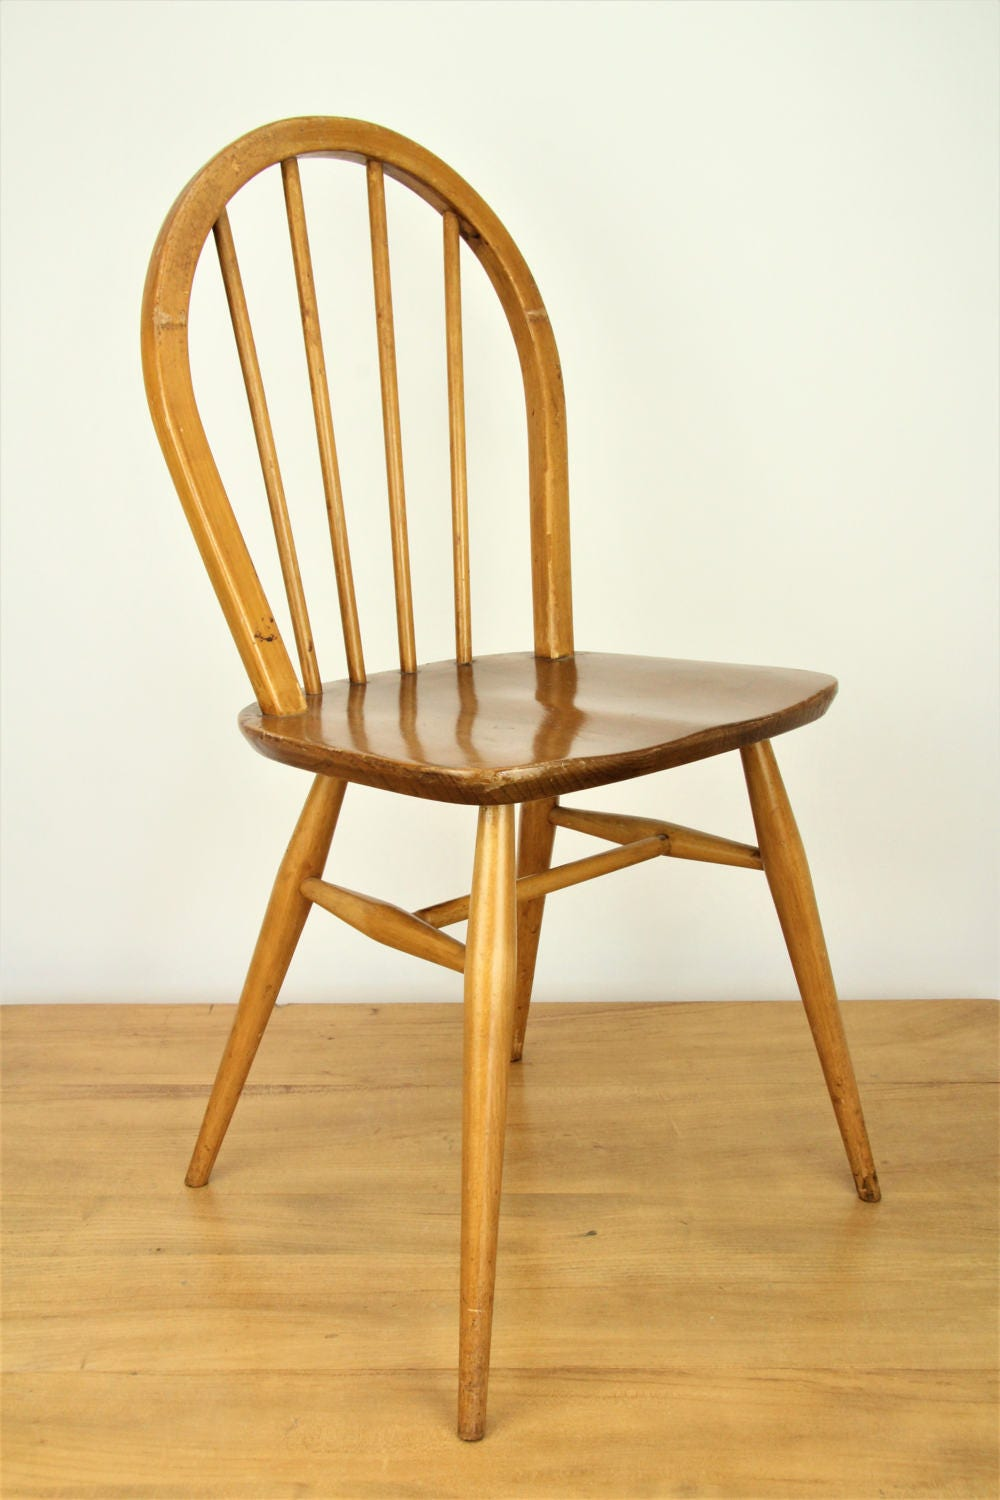 4 original vintage ercol windsor chairs